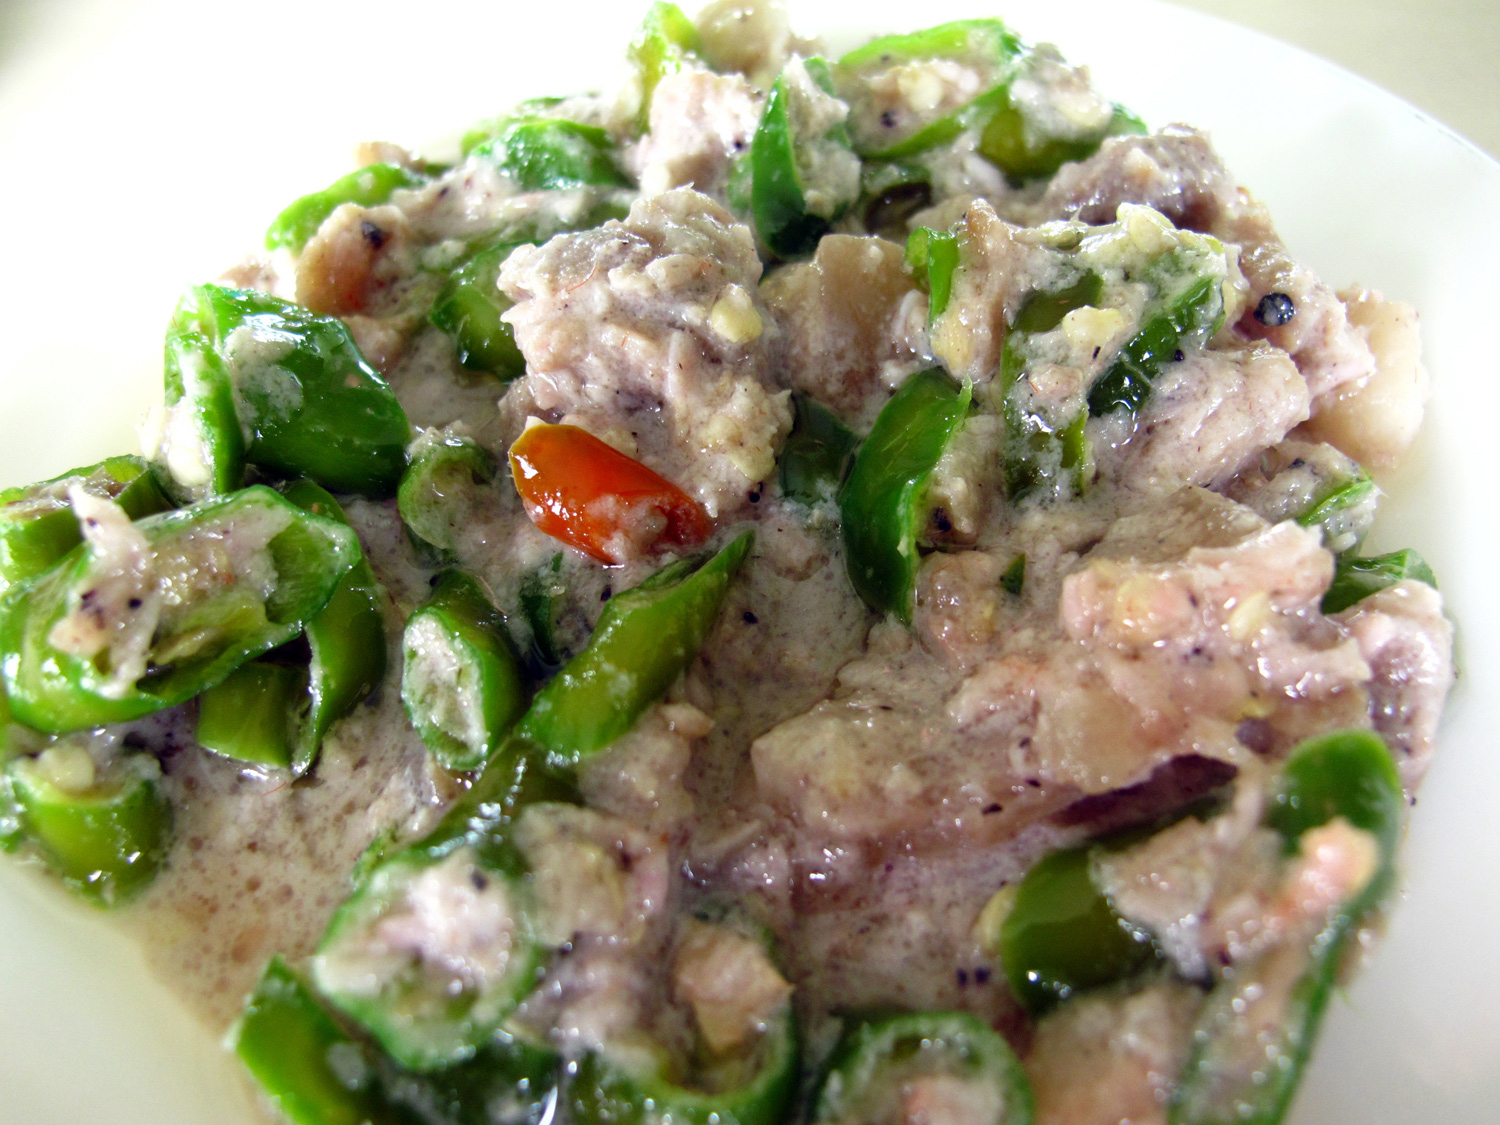 The Happy Home Cook: Bicol Express — Positively Filipino